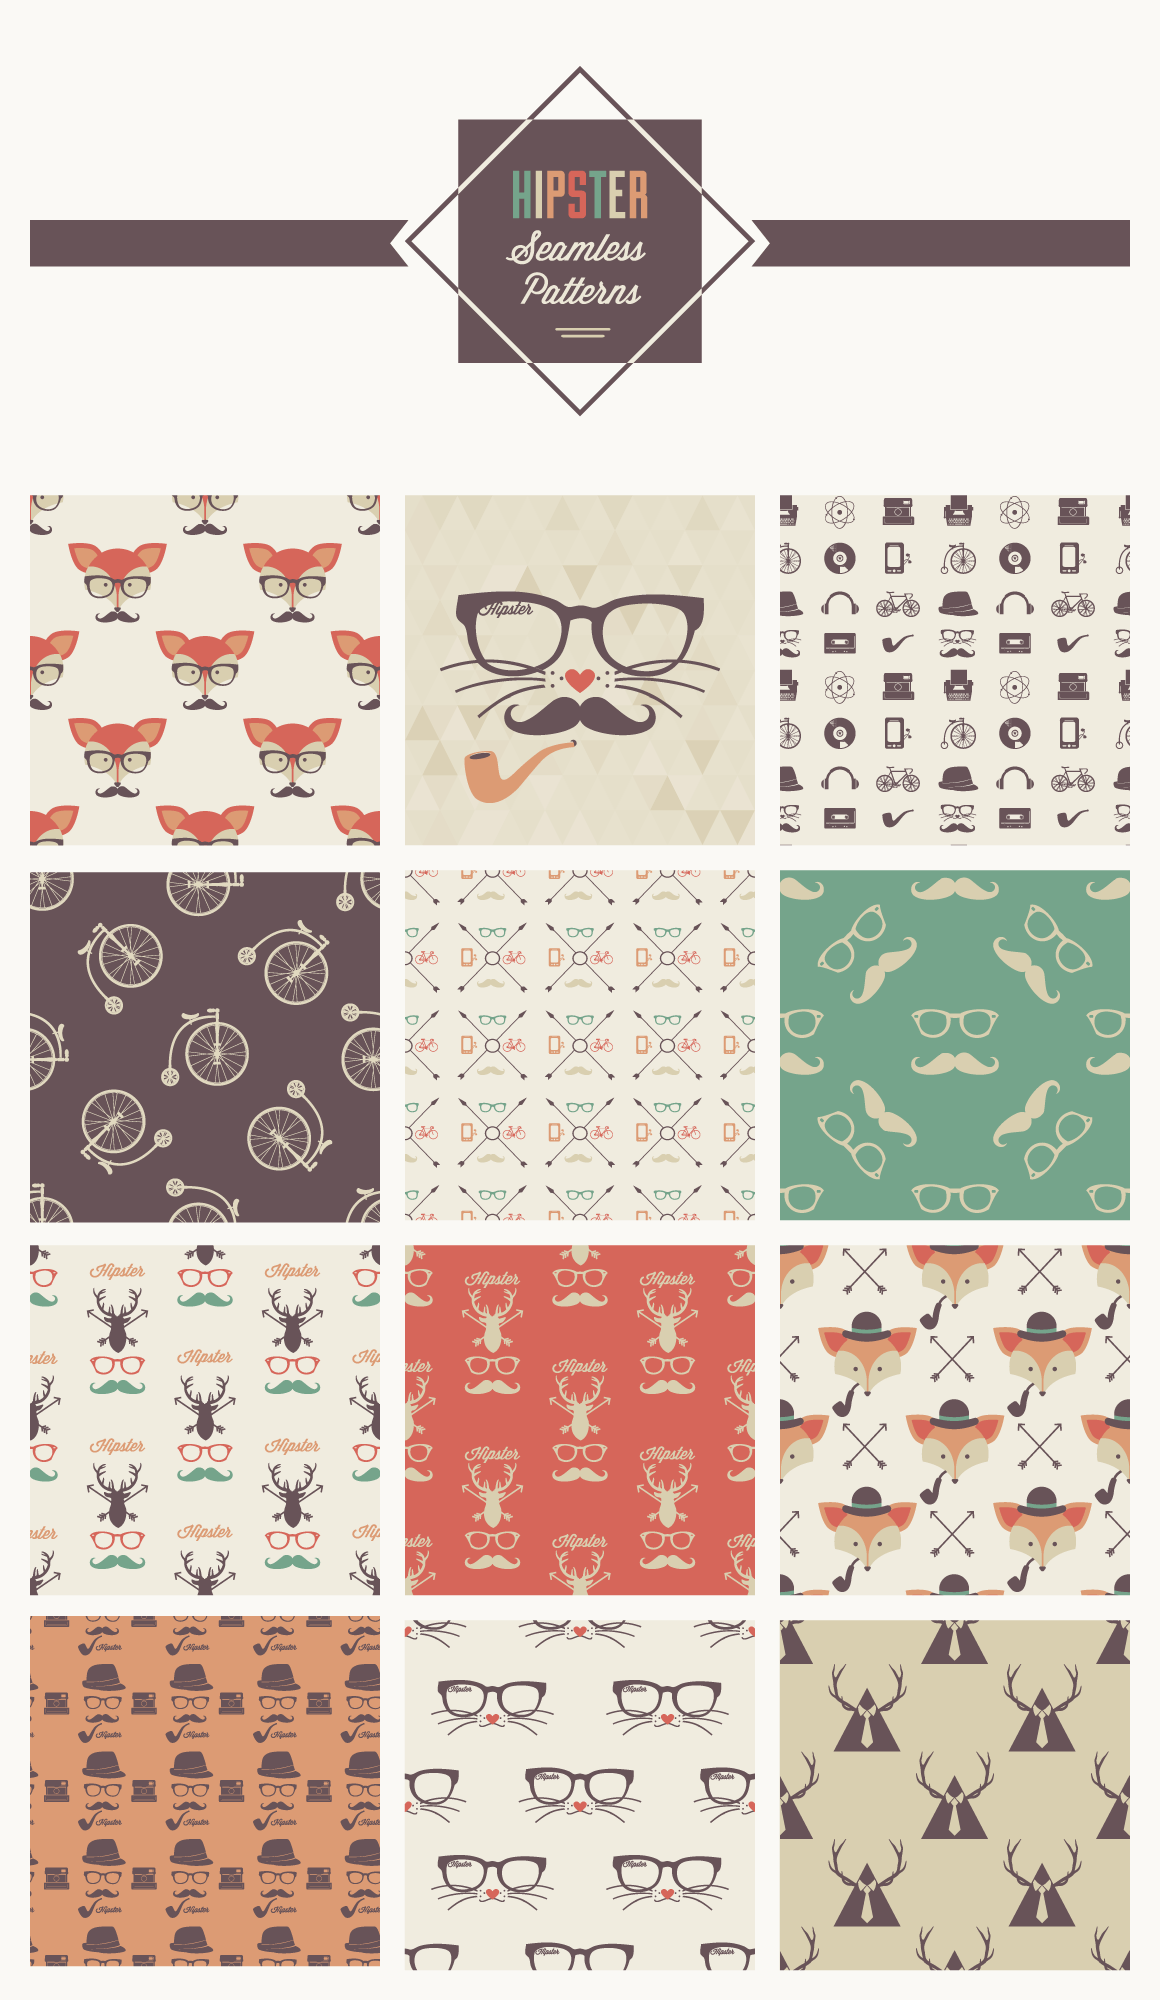 hipster-seamless-patterns